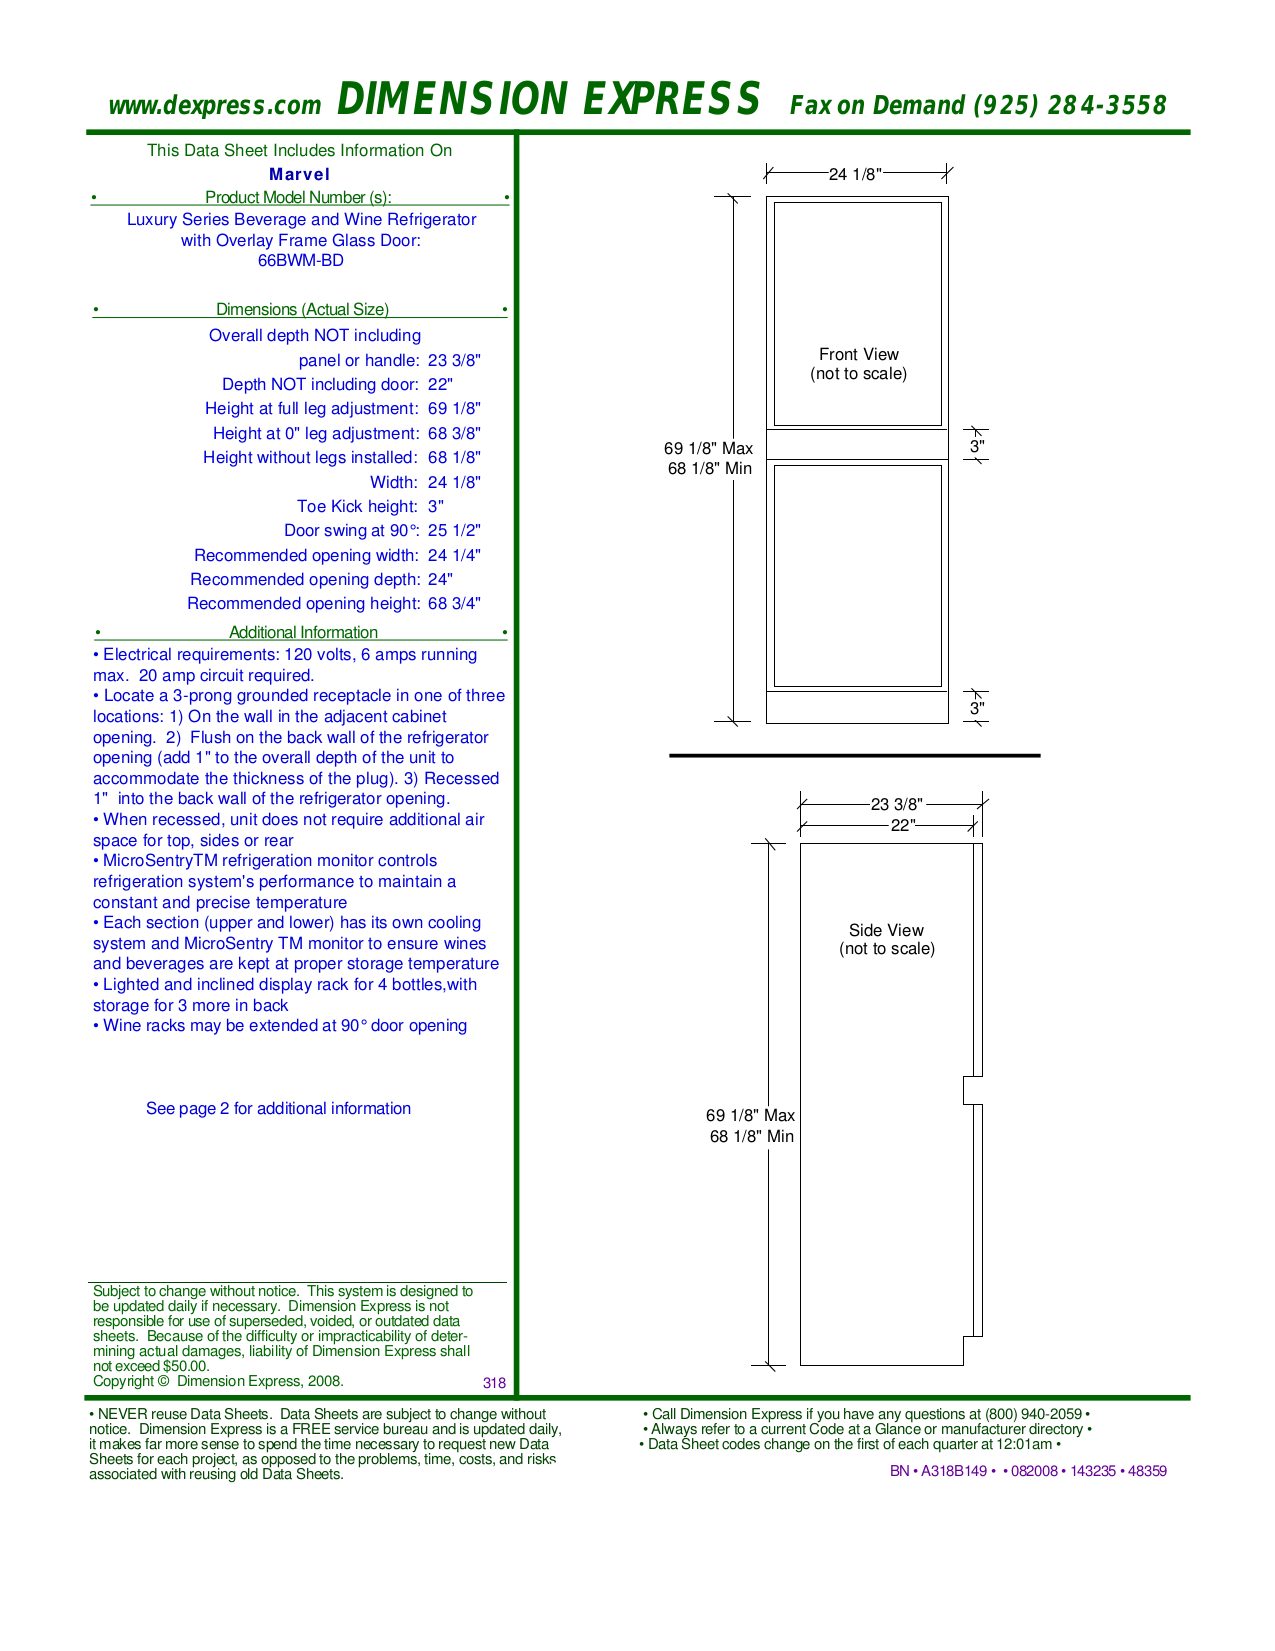 pdf for Marvel Refrigerator 66BWM-BN manual